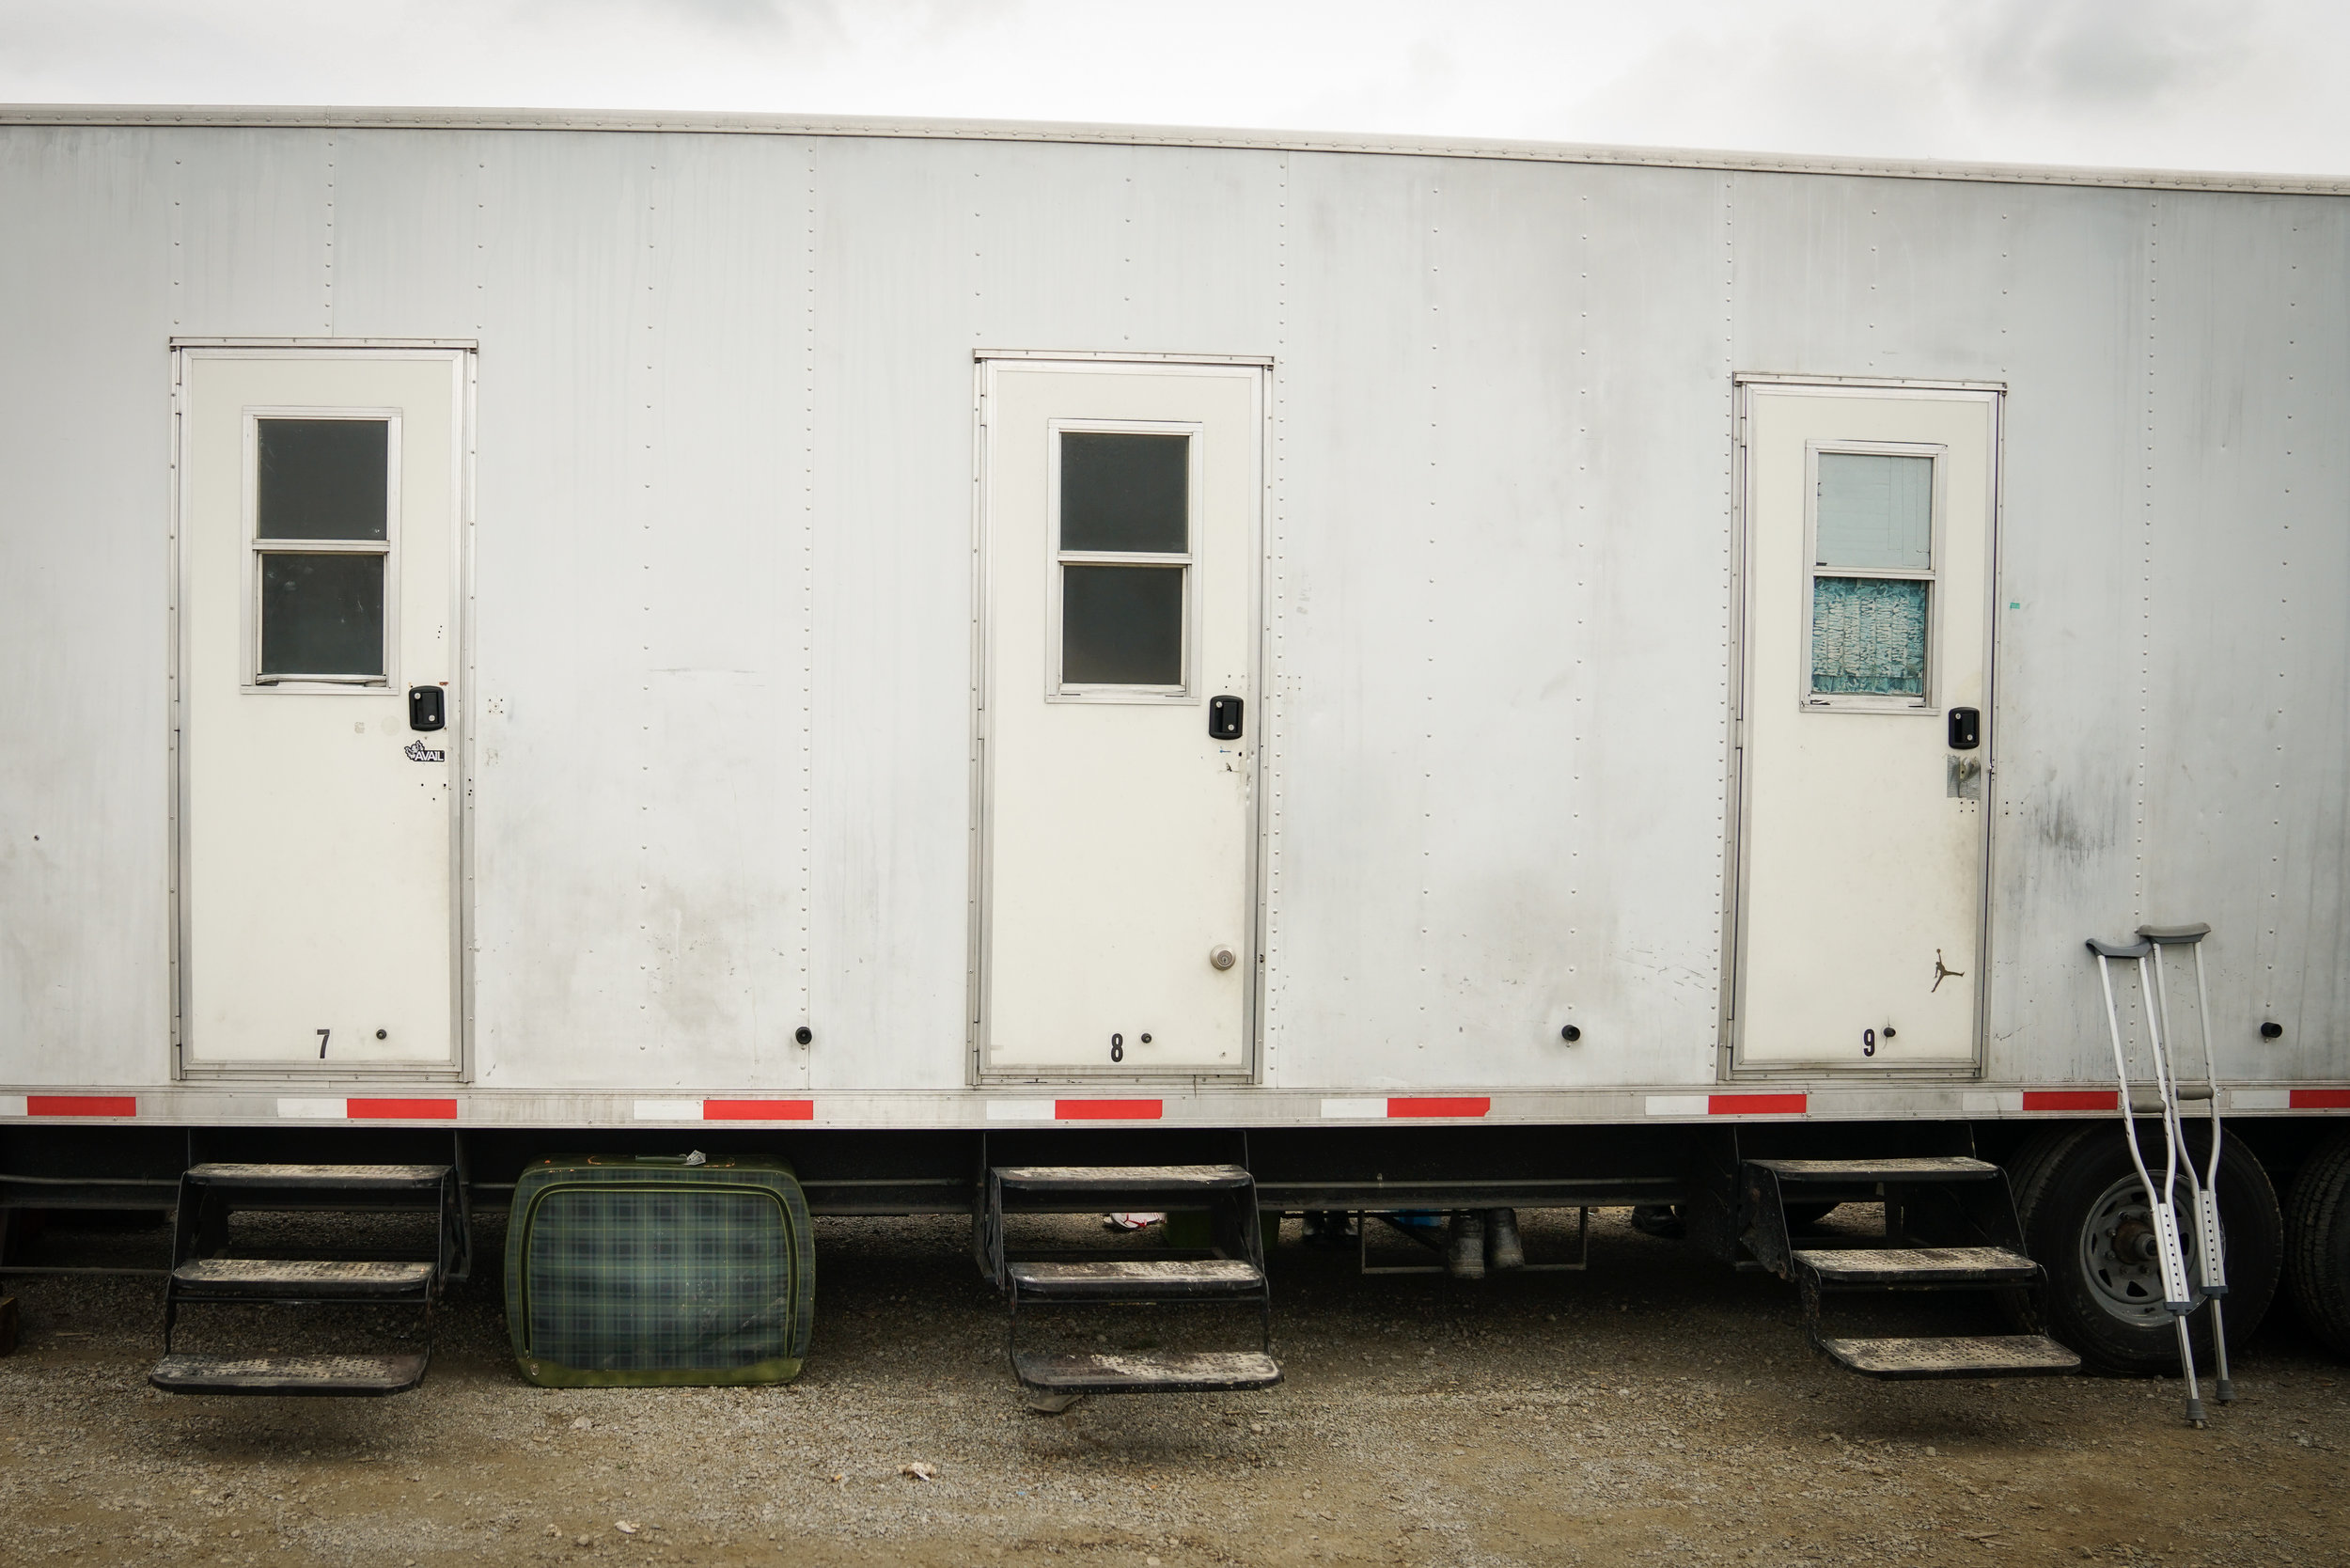 Trailer with Suitcase and Crutches